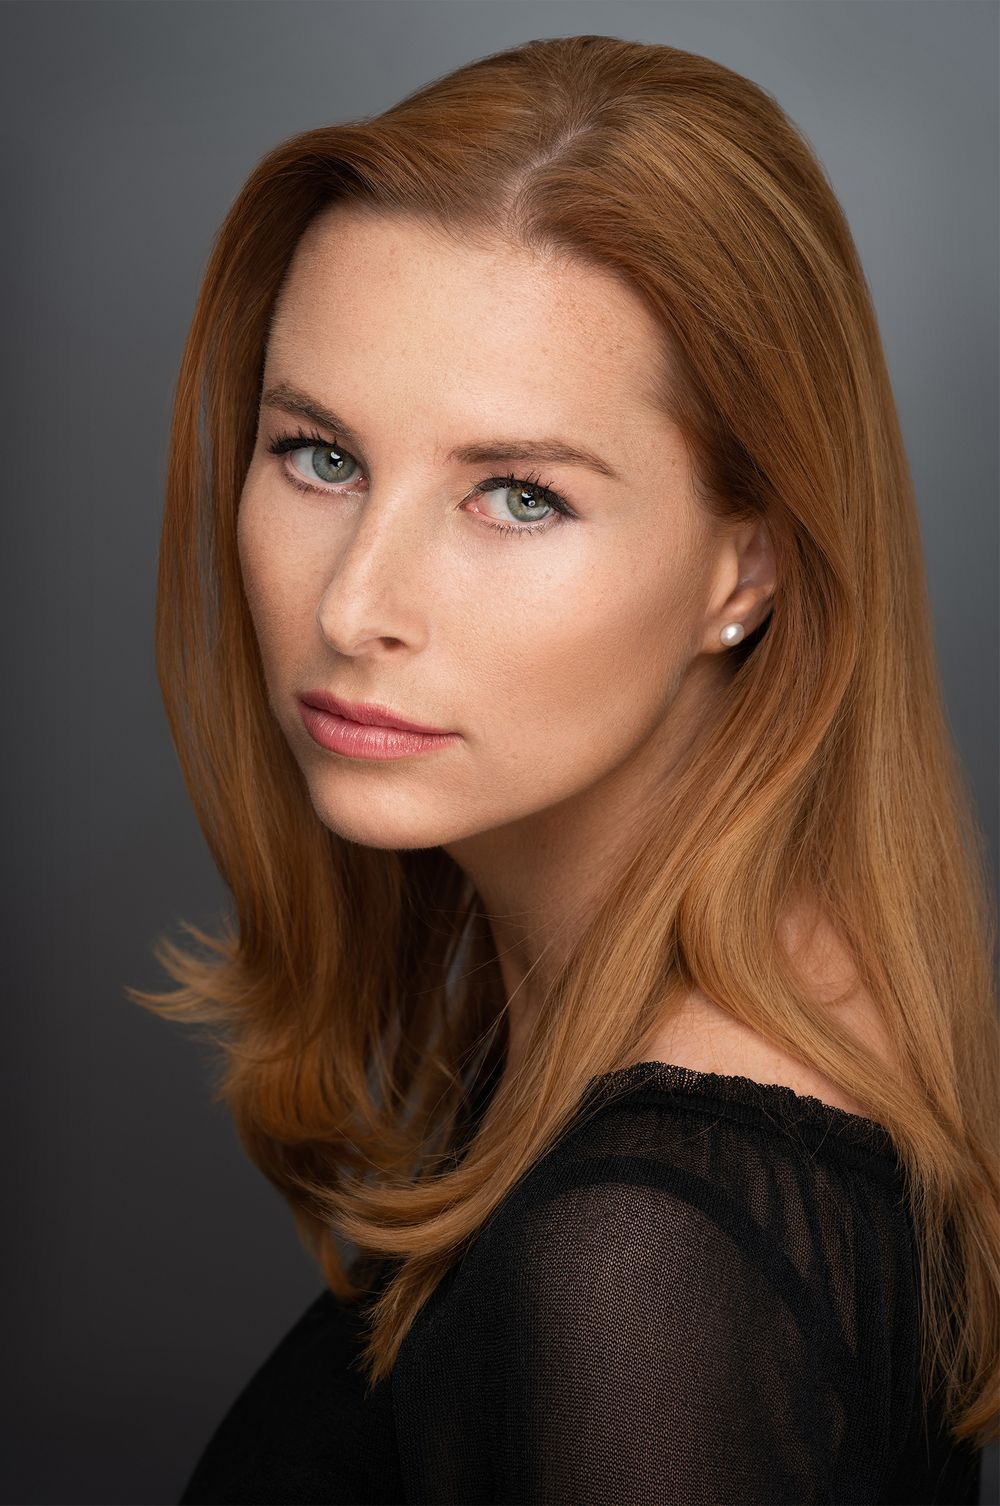 Actress Headshot in LA